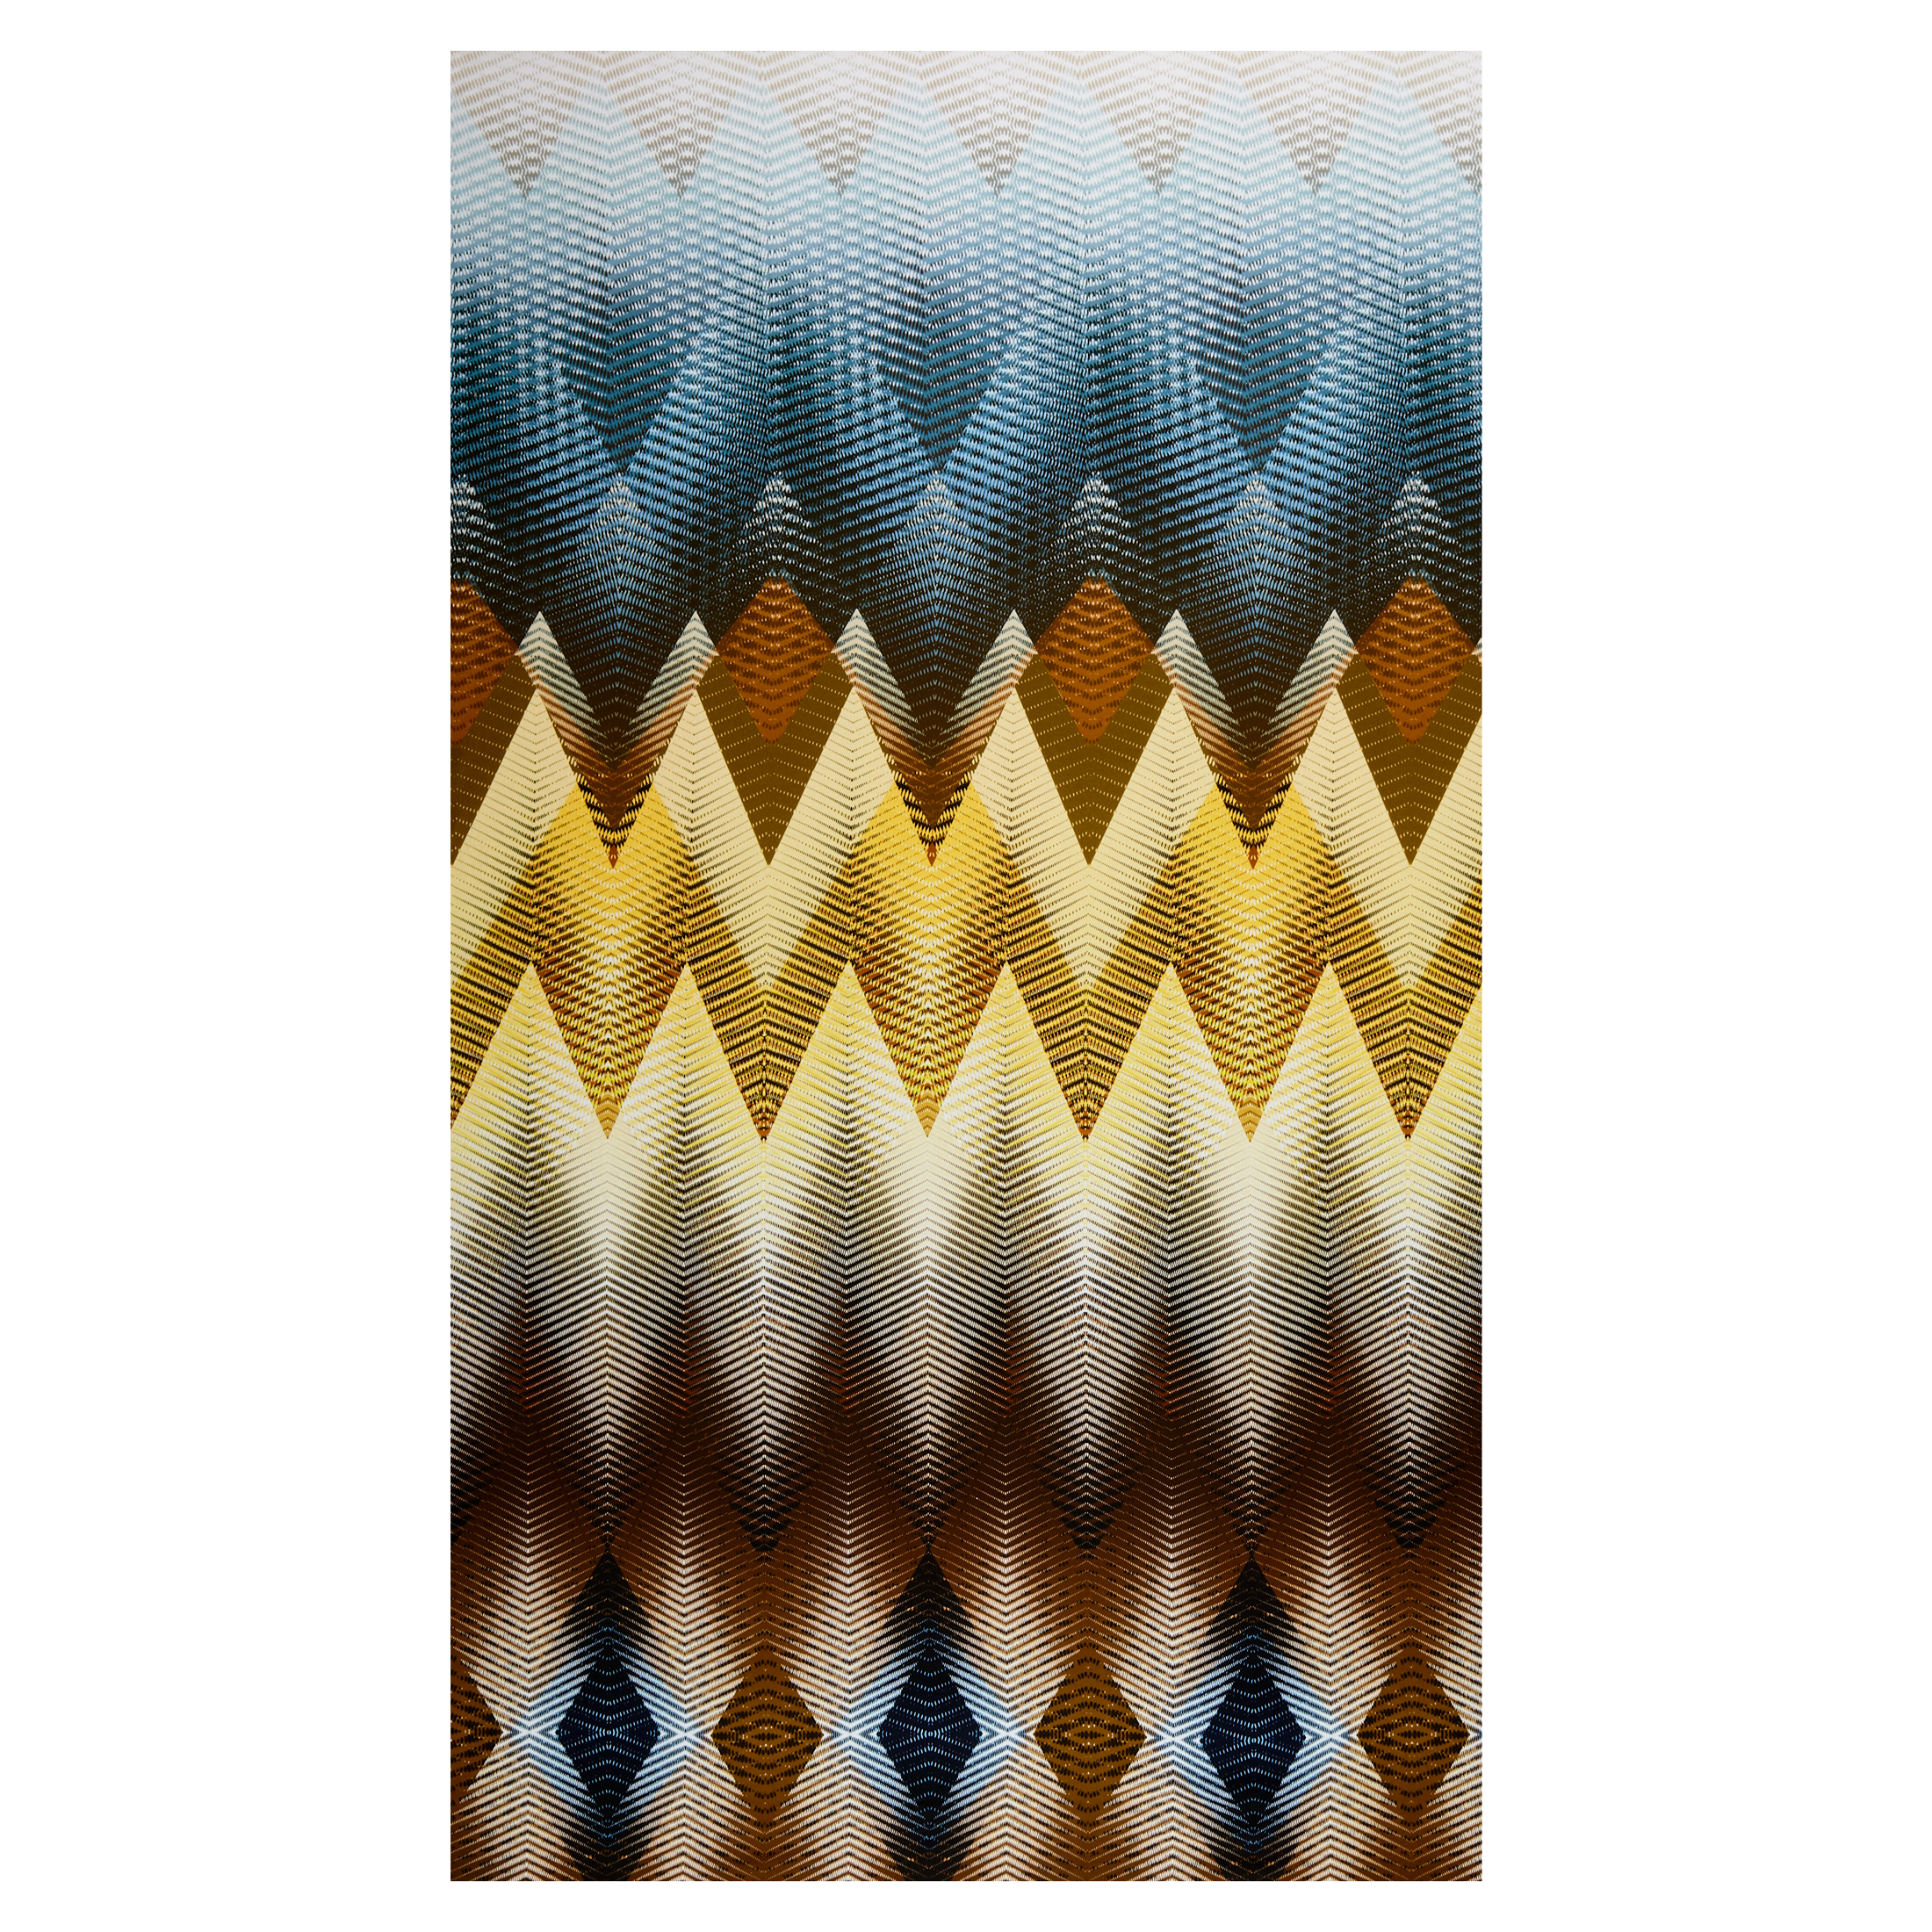 Hoffman Digital Wild Kingdom Chevron Savannah Fabric